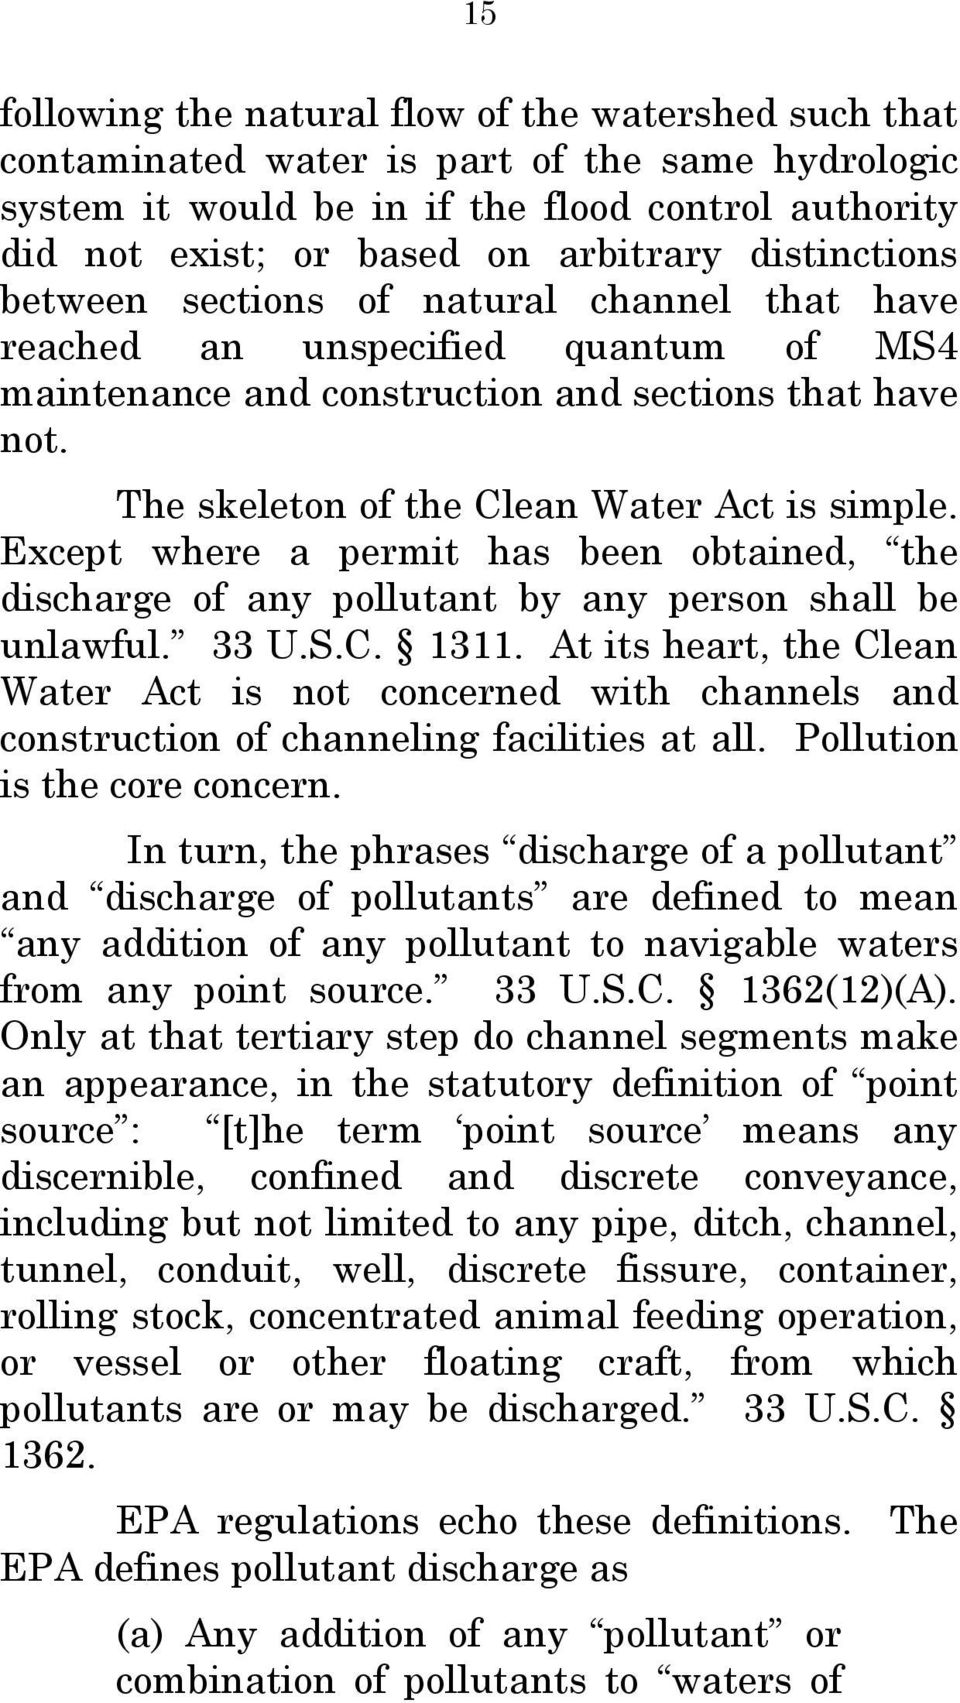 Except where a permit has been obtained, the discharge of any pollutant by any person shall be unlawful. 33 U.S.C. 1311.